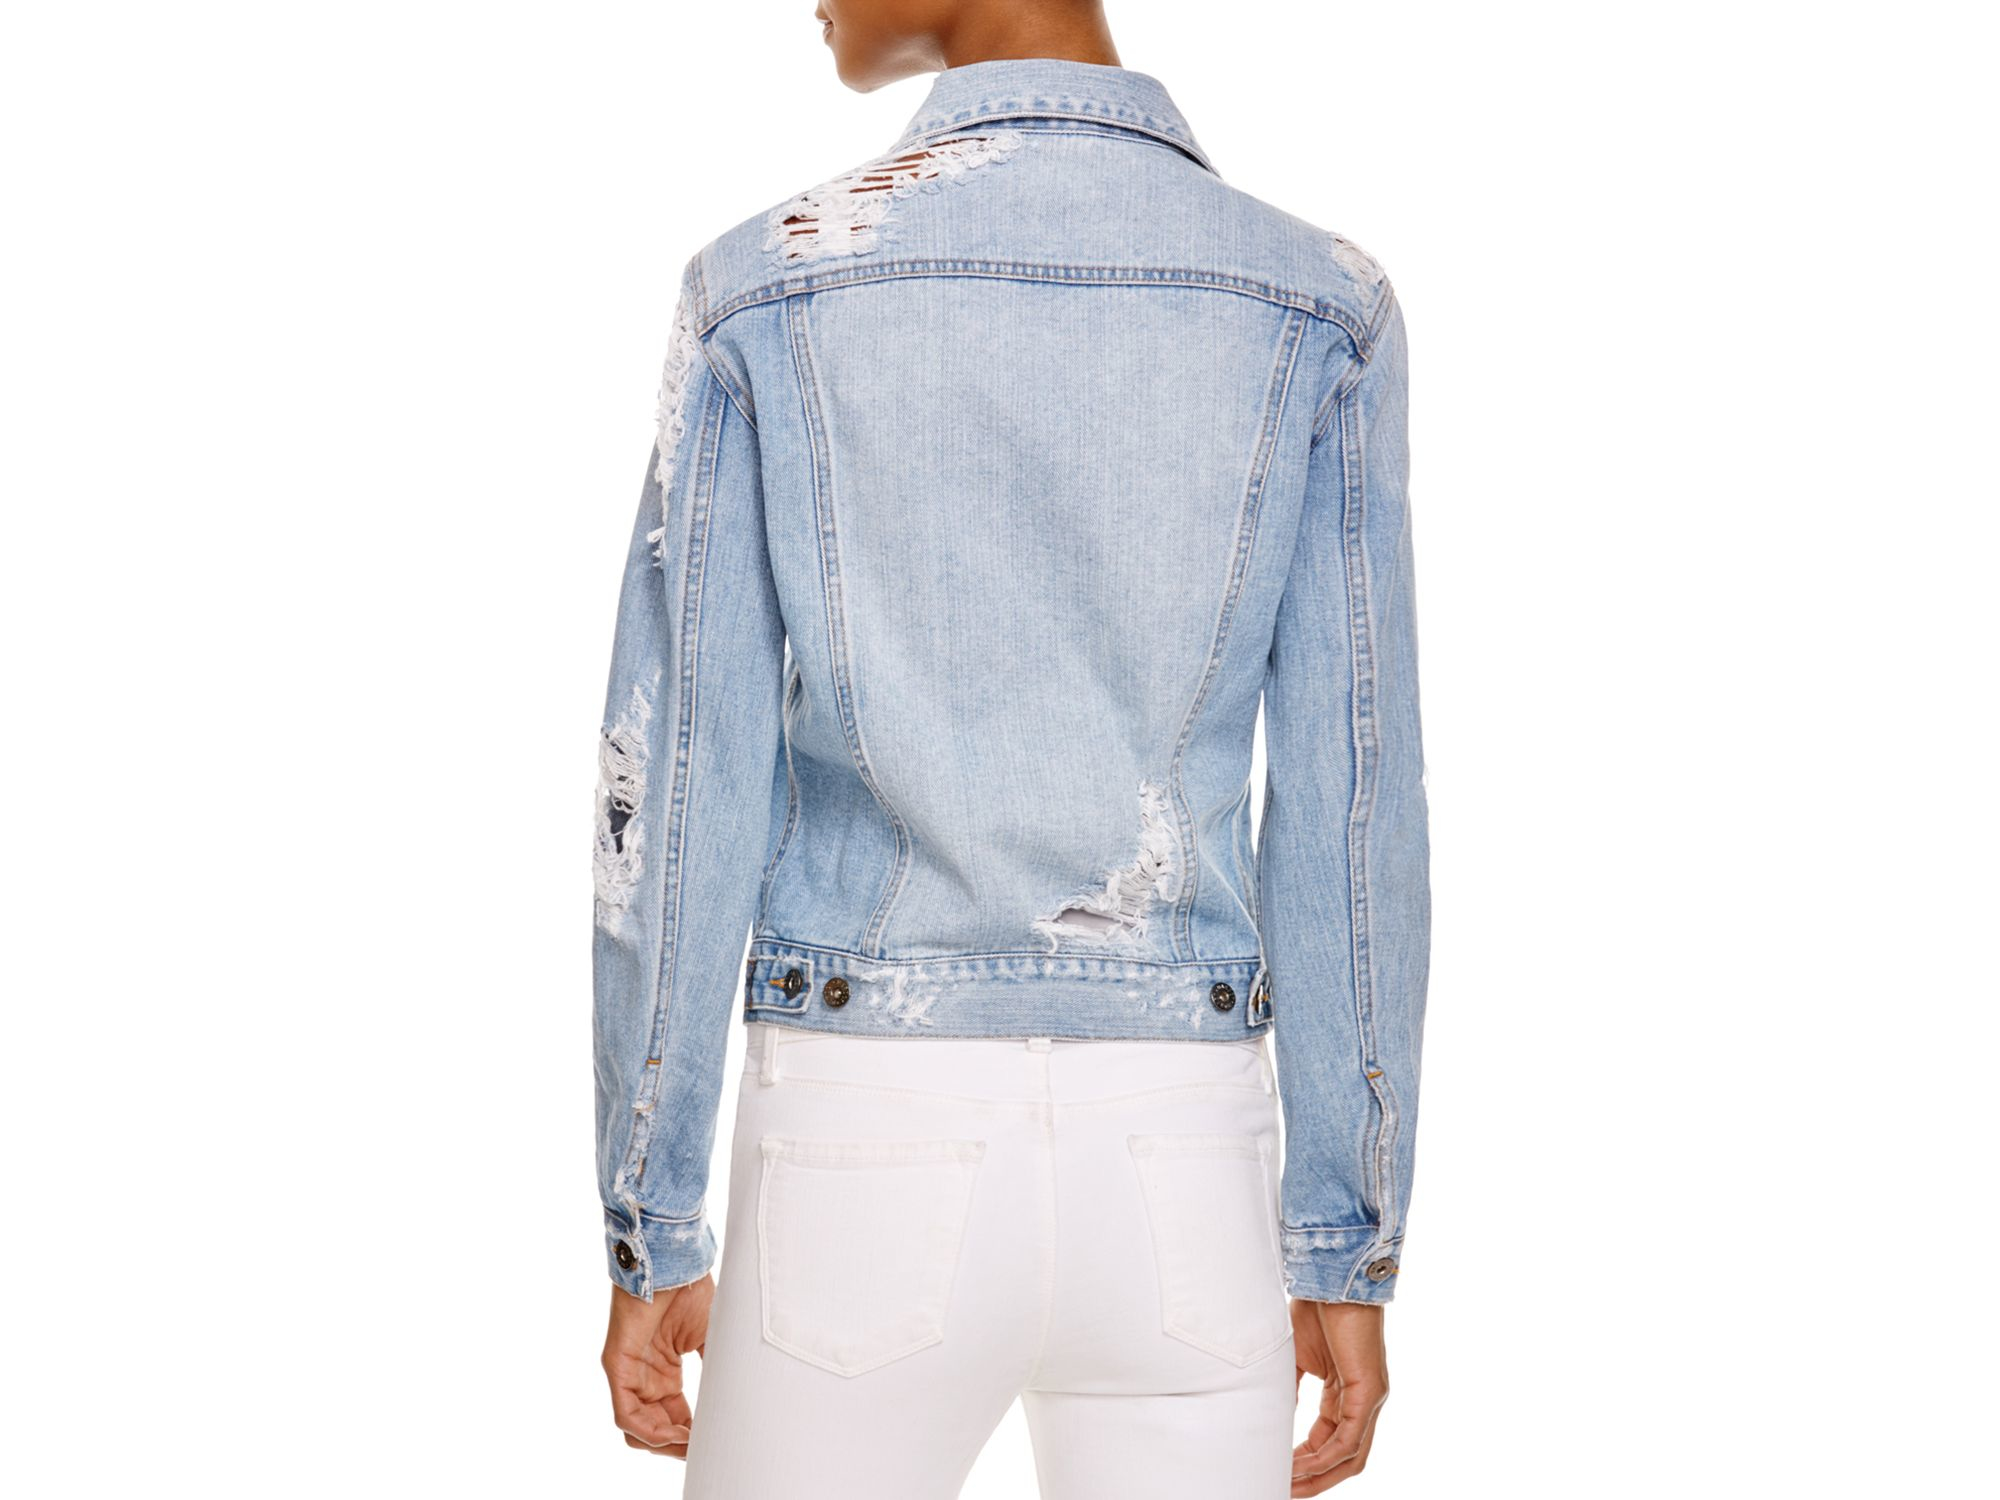 Bardot Distressed Denim Jacket. Point collar, long sleeves, button front closure. Button chest pockets, side slit pockets, button cuffs. Approx. 22